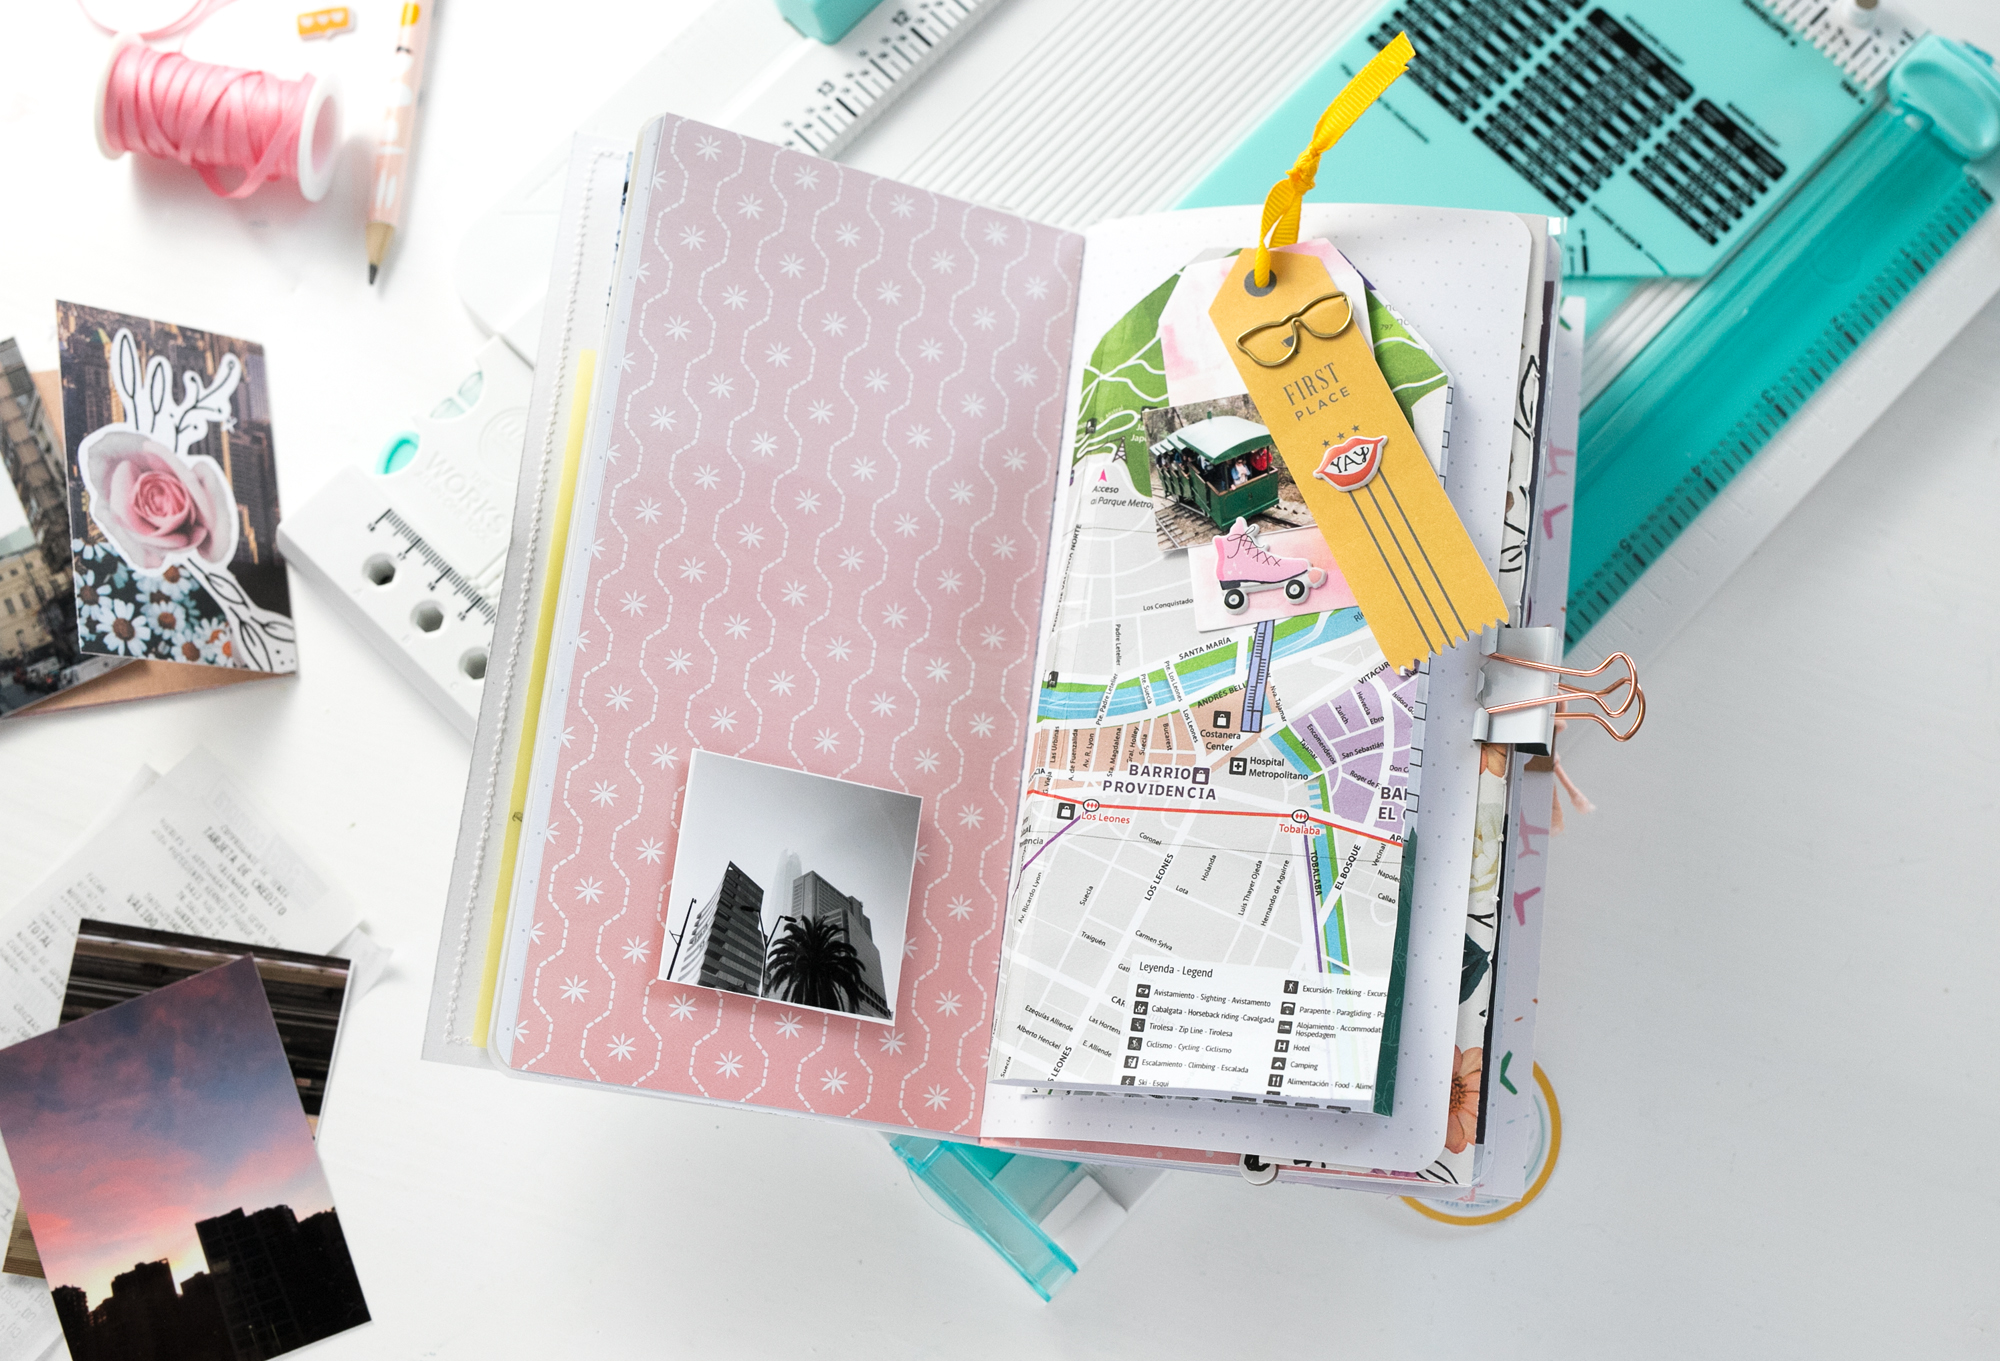 Traveler's Notebook with The Works All In One Tool by Steffi Ried